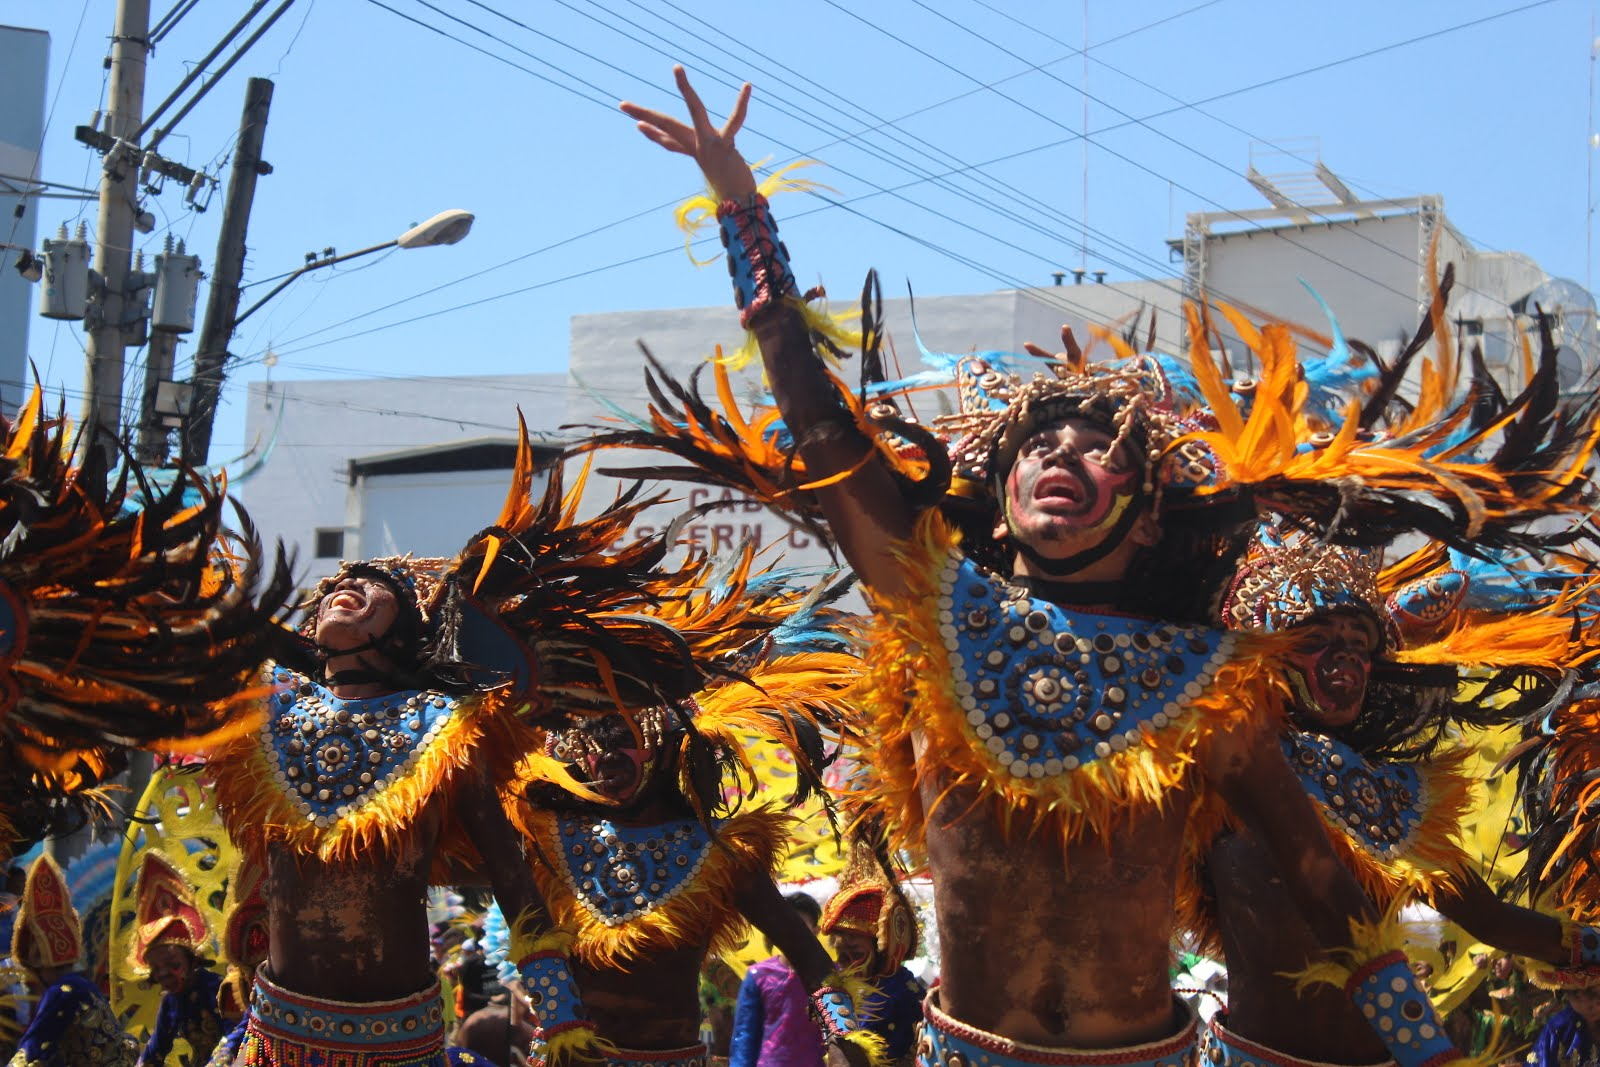 Dinagyang in Vivid Color, the festival's costume makers talk color, tradtion, and revelry.  Dinagyang, Iloilo, Heritage, Culture, Costumes, Headdress, Paghidaet, Tribu, Tourism,  Panay, Travel, Festival, Dingayang Festival, Kasadyahan, Ati, Dance, Warriors, Ilonggo,